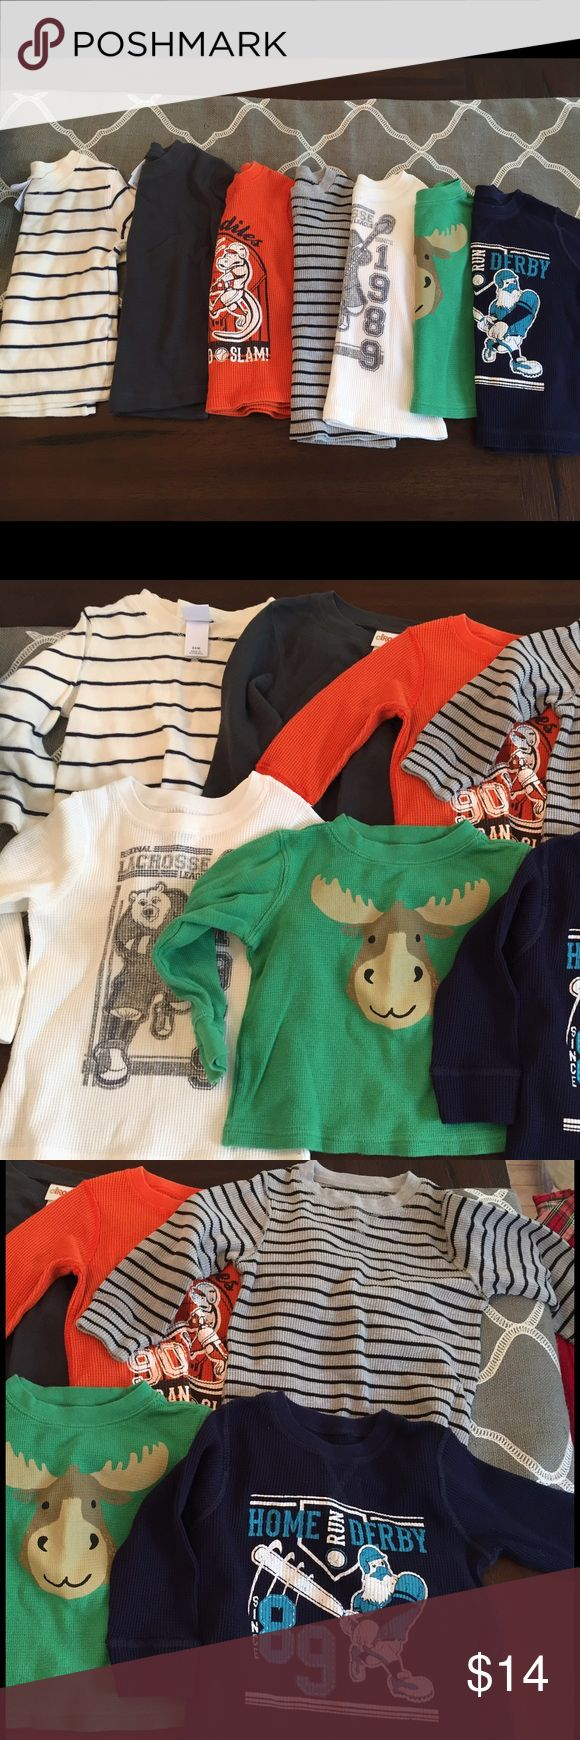 18-24 month boy's long-sleeved thermals 7 long-sleeved toddler boy's thermal shirts. 6 shirts are size 18-24 month, and one is size 2T, but runs small. Brands are Children's Place, Circo, and Carter's. Great condition!                      🔹 Willing to sell items separately or in bundles. Just let me know!! 🔹Check out my closet for other boy and girl baby/toddler items!! I am in the process of selling my boy/girl twins' clothes from Newborn - 3T. If there's something you are looking for…